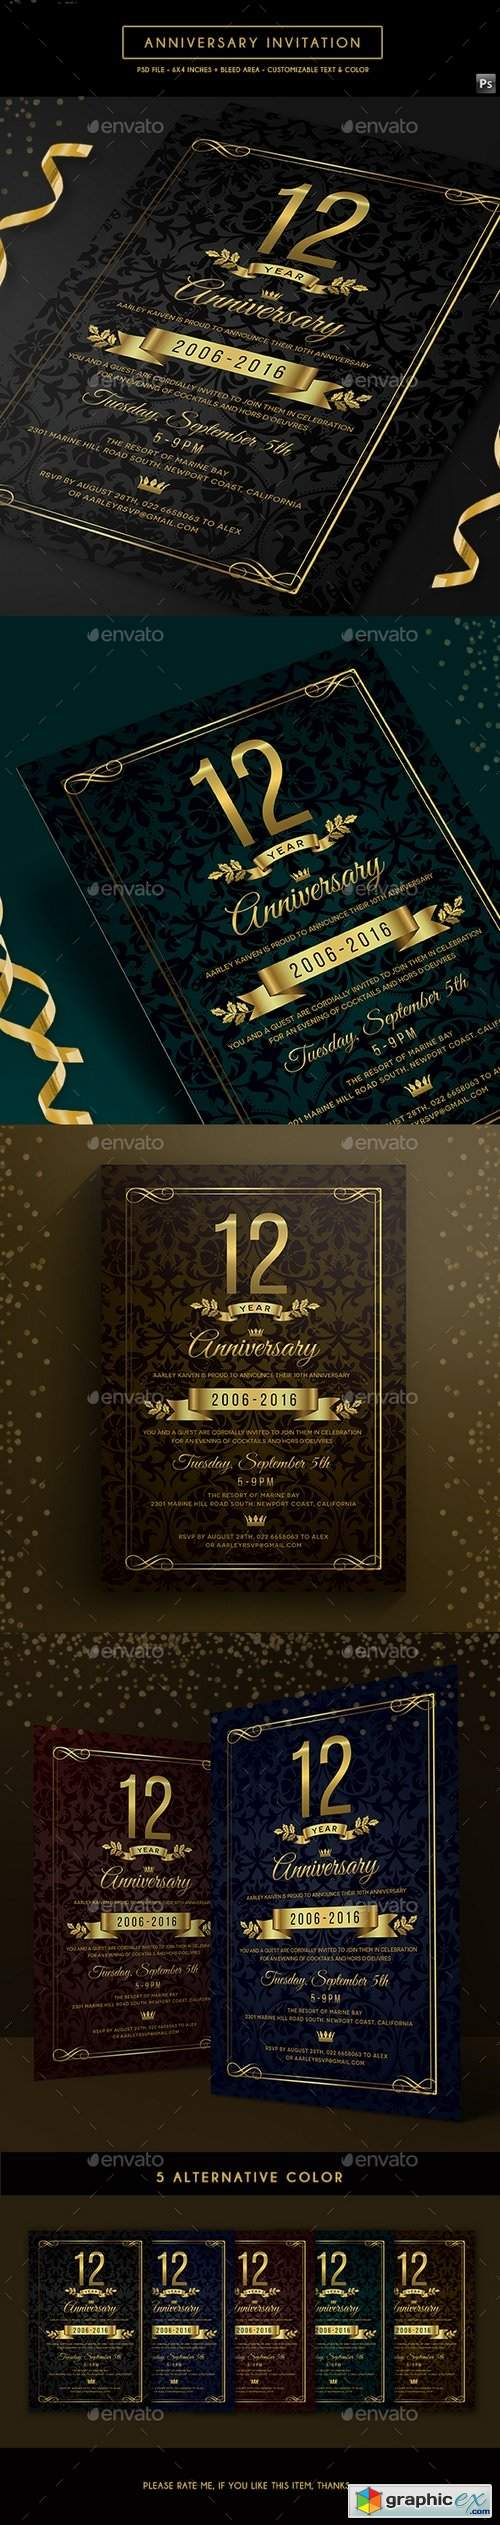 Anniversary Invitation 19770240